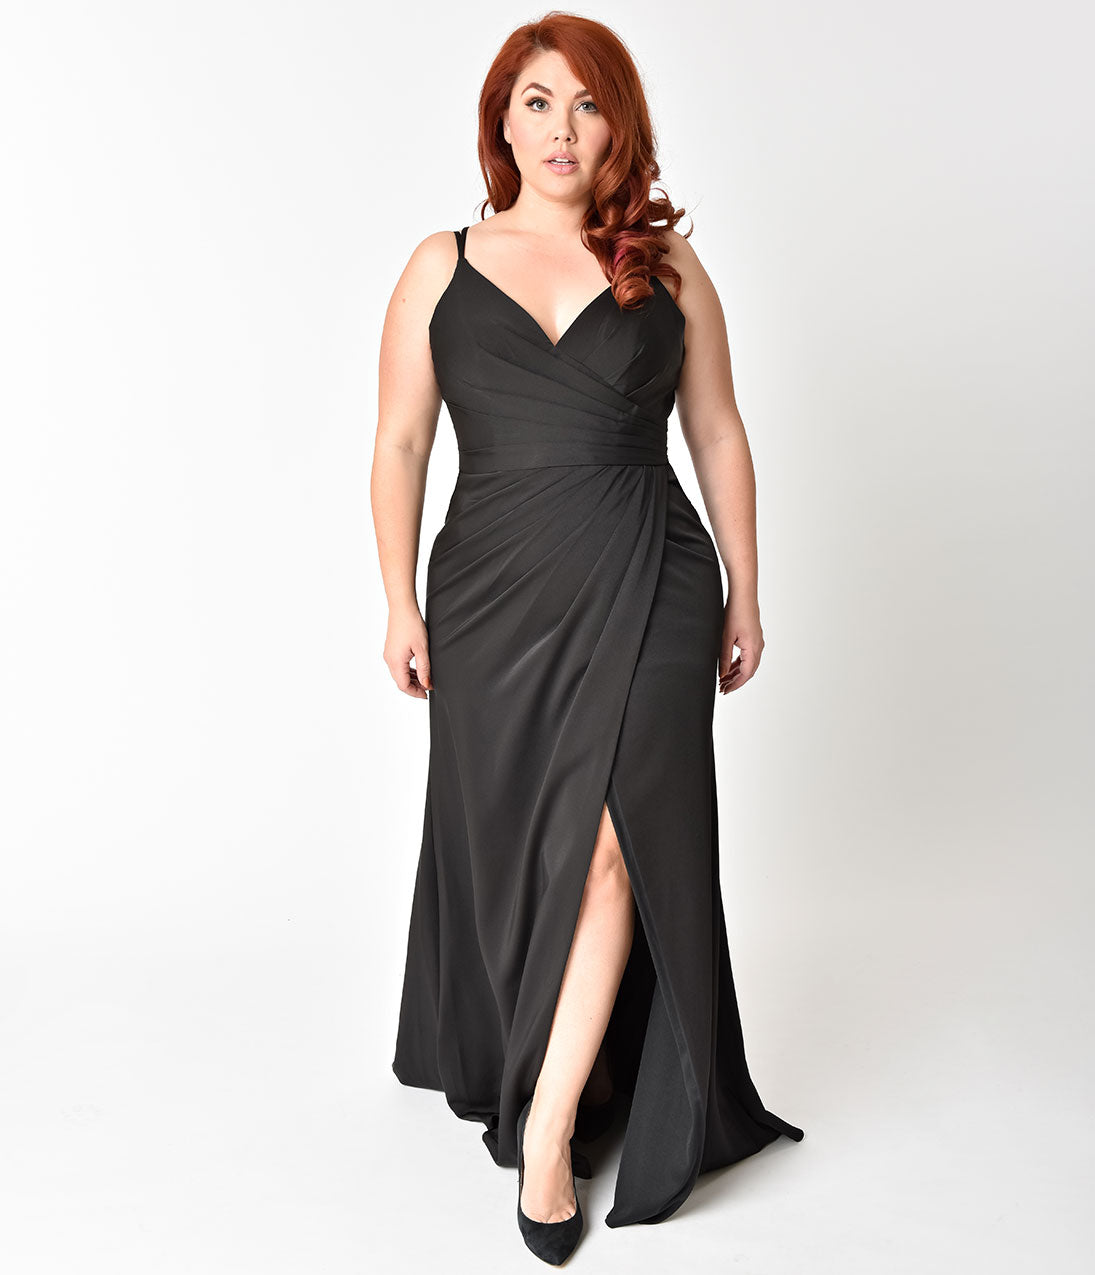 70s Prom, Formal, Evening, Party Dresses Plus Size Black Sexy Pleated Long Dress $118.00 AT vintagedancer.com